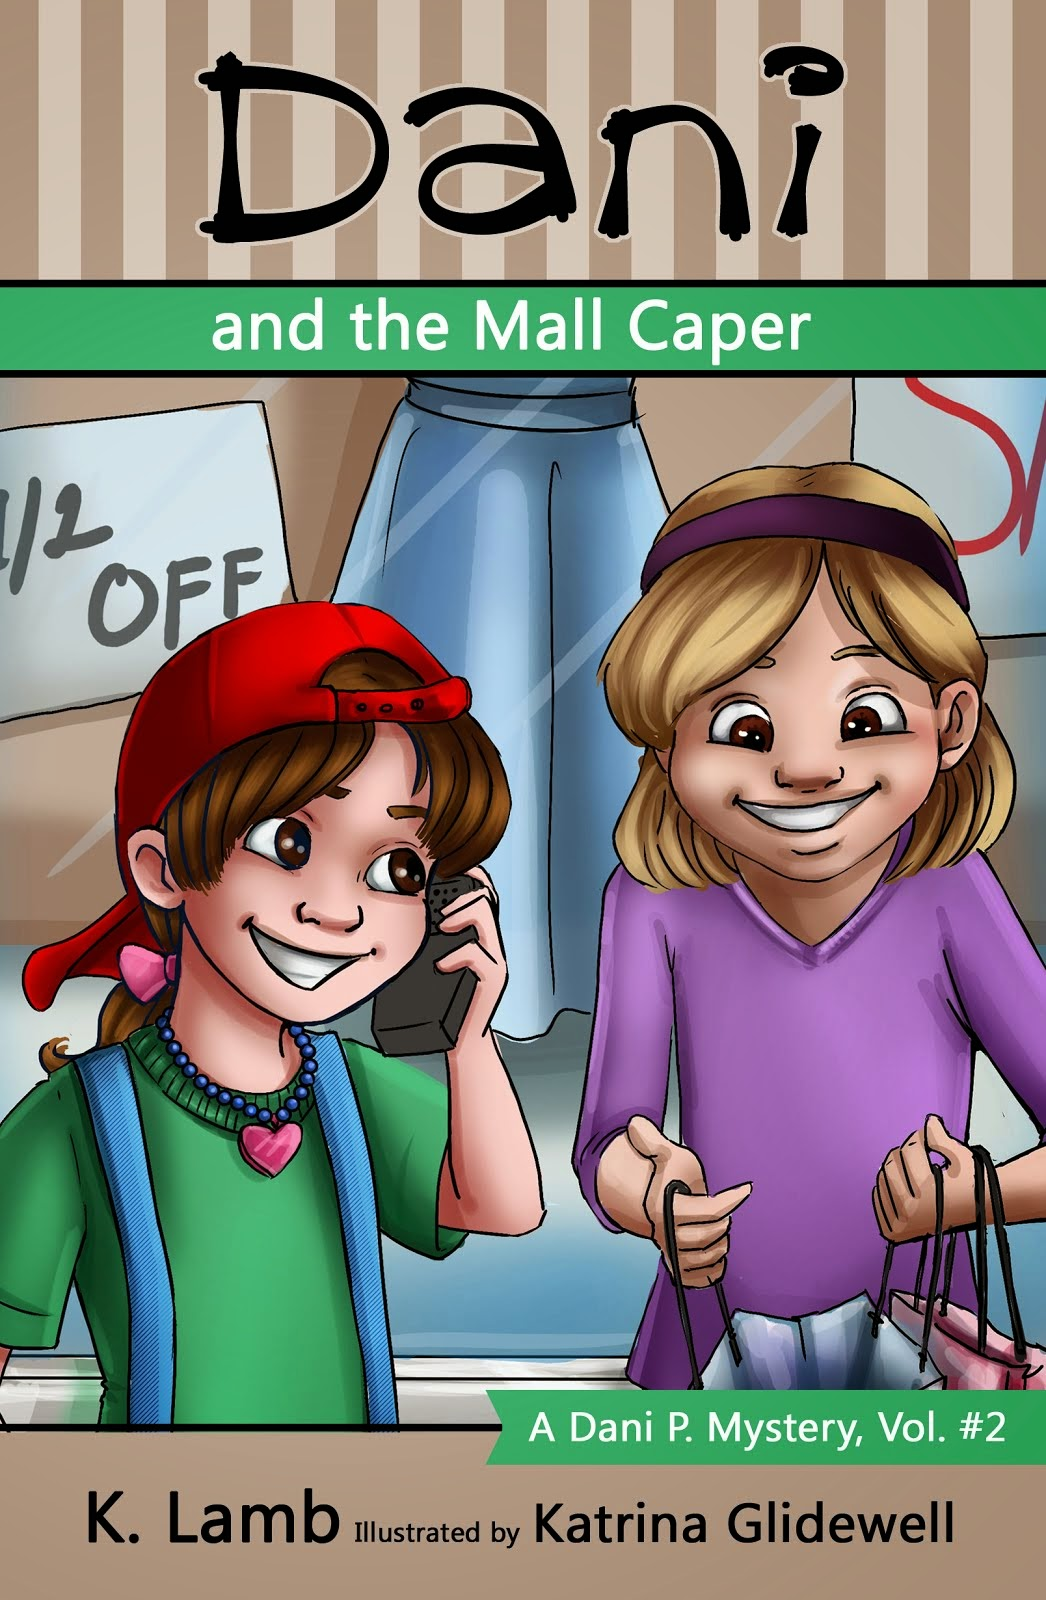 Dani and the Mall Caper